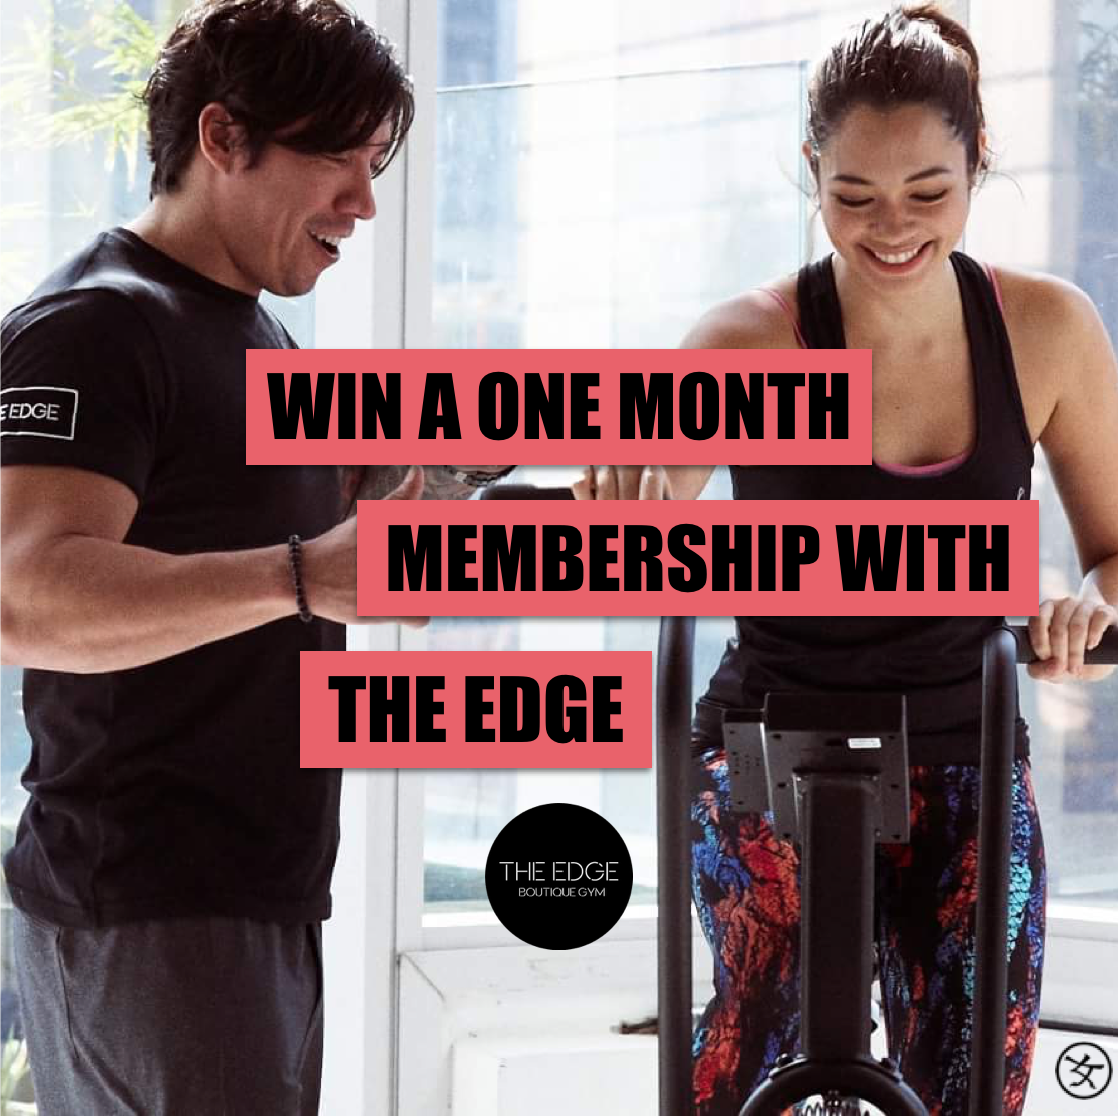 #CLEANSLATE2017: EDGE OUT 2016, HELLO 2017! WIN A ONE MONTH MEMBERSHIP WITH THE EDGE!